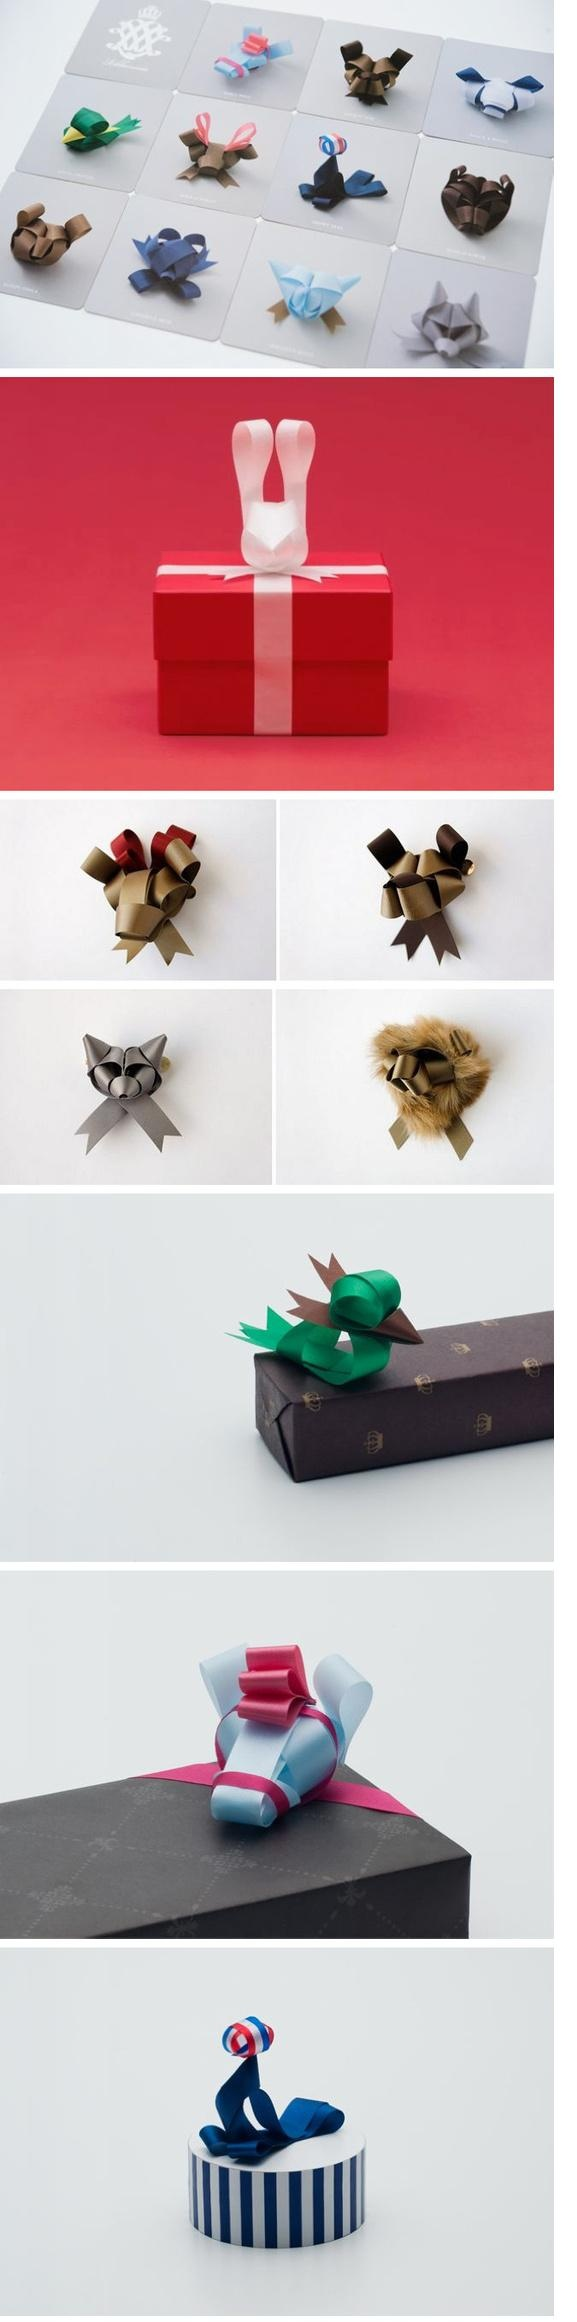 I have to learn how to make these!